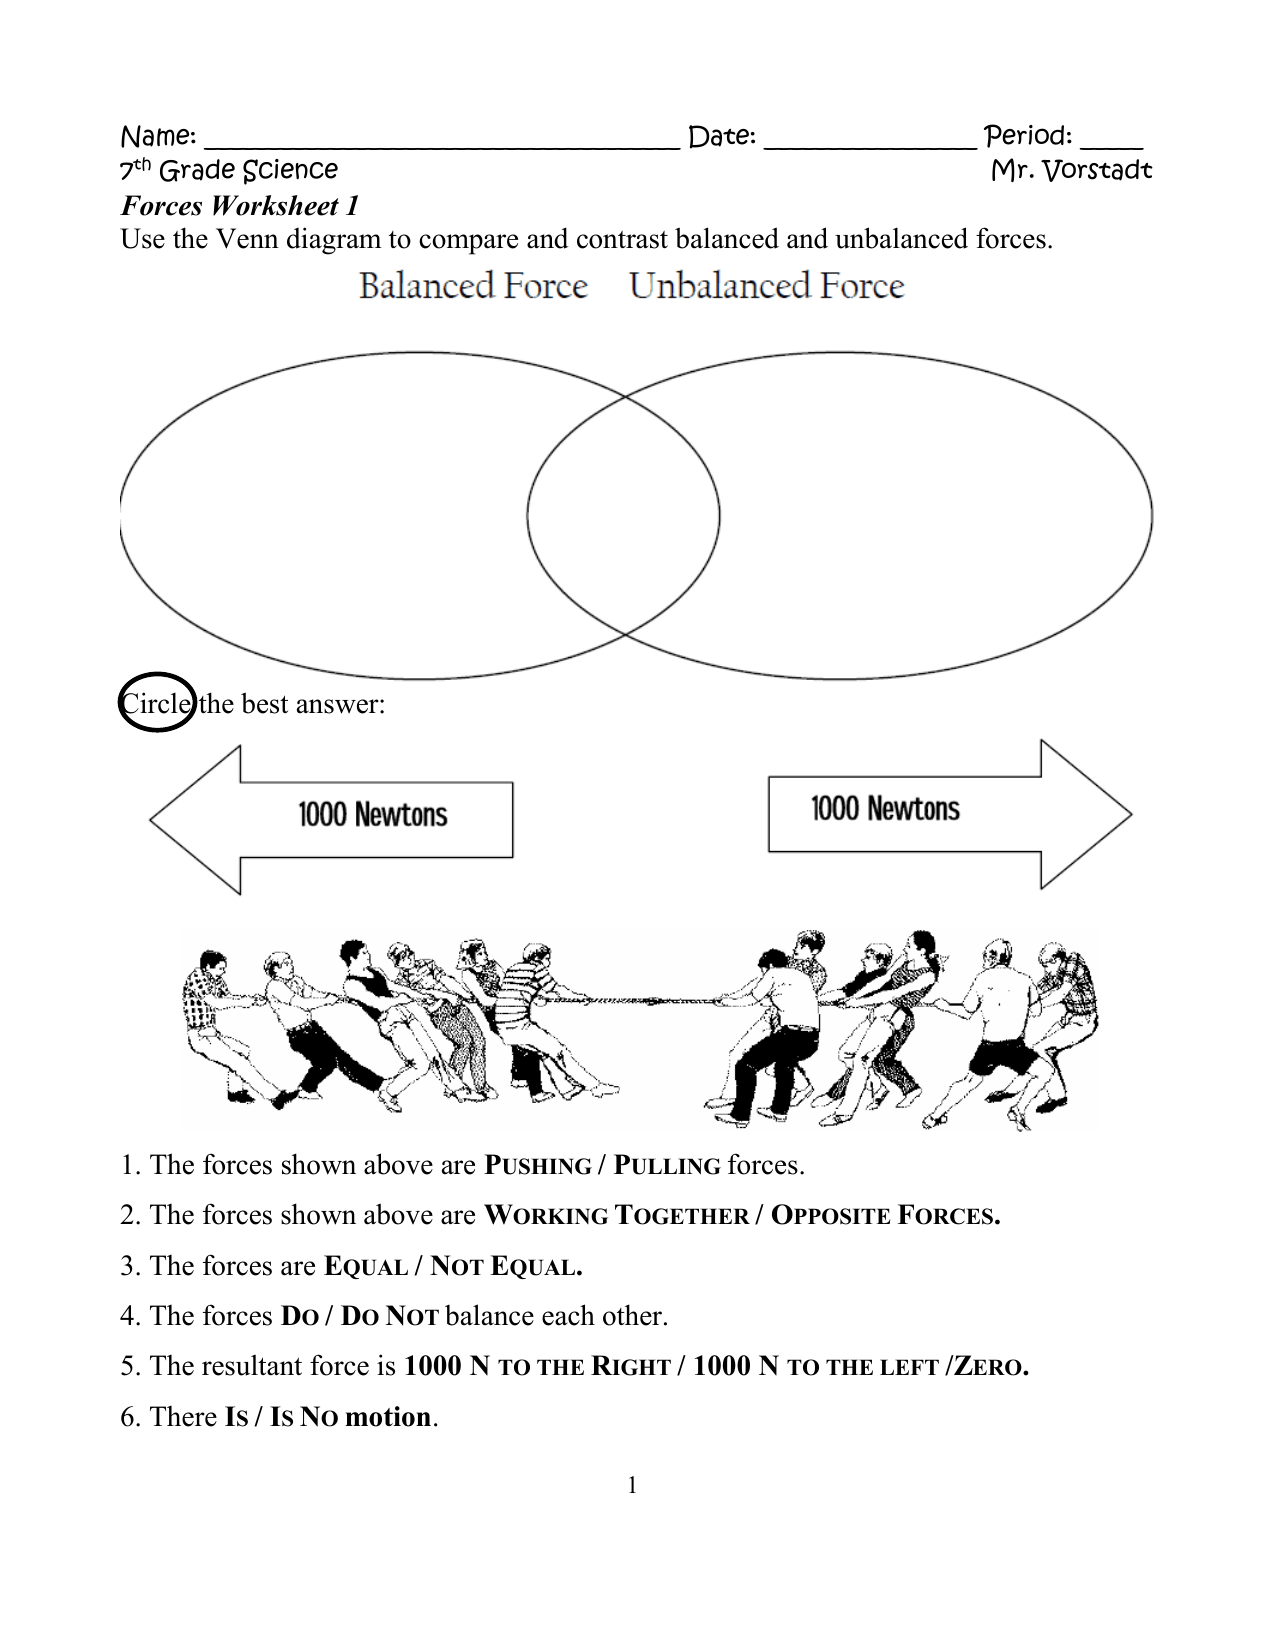 Balanced And Unbalanced Forces Worksheet